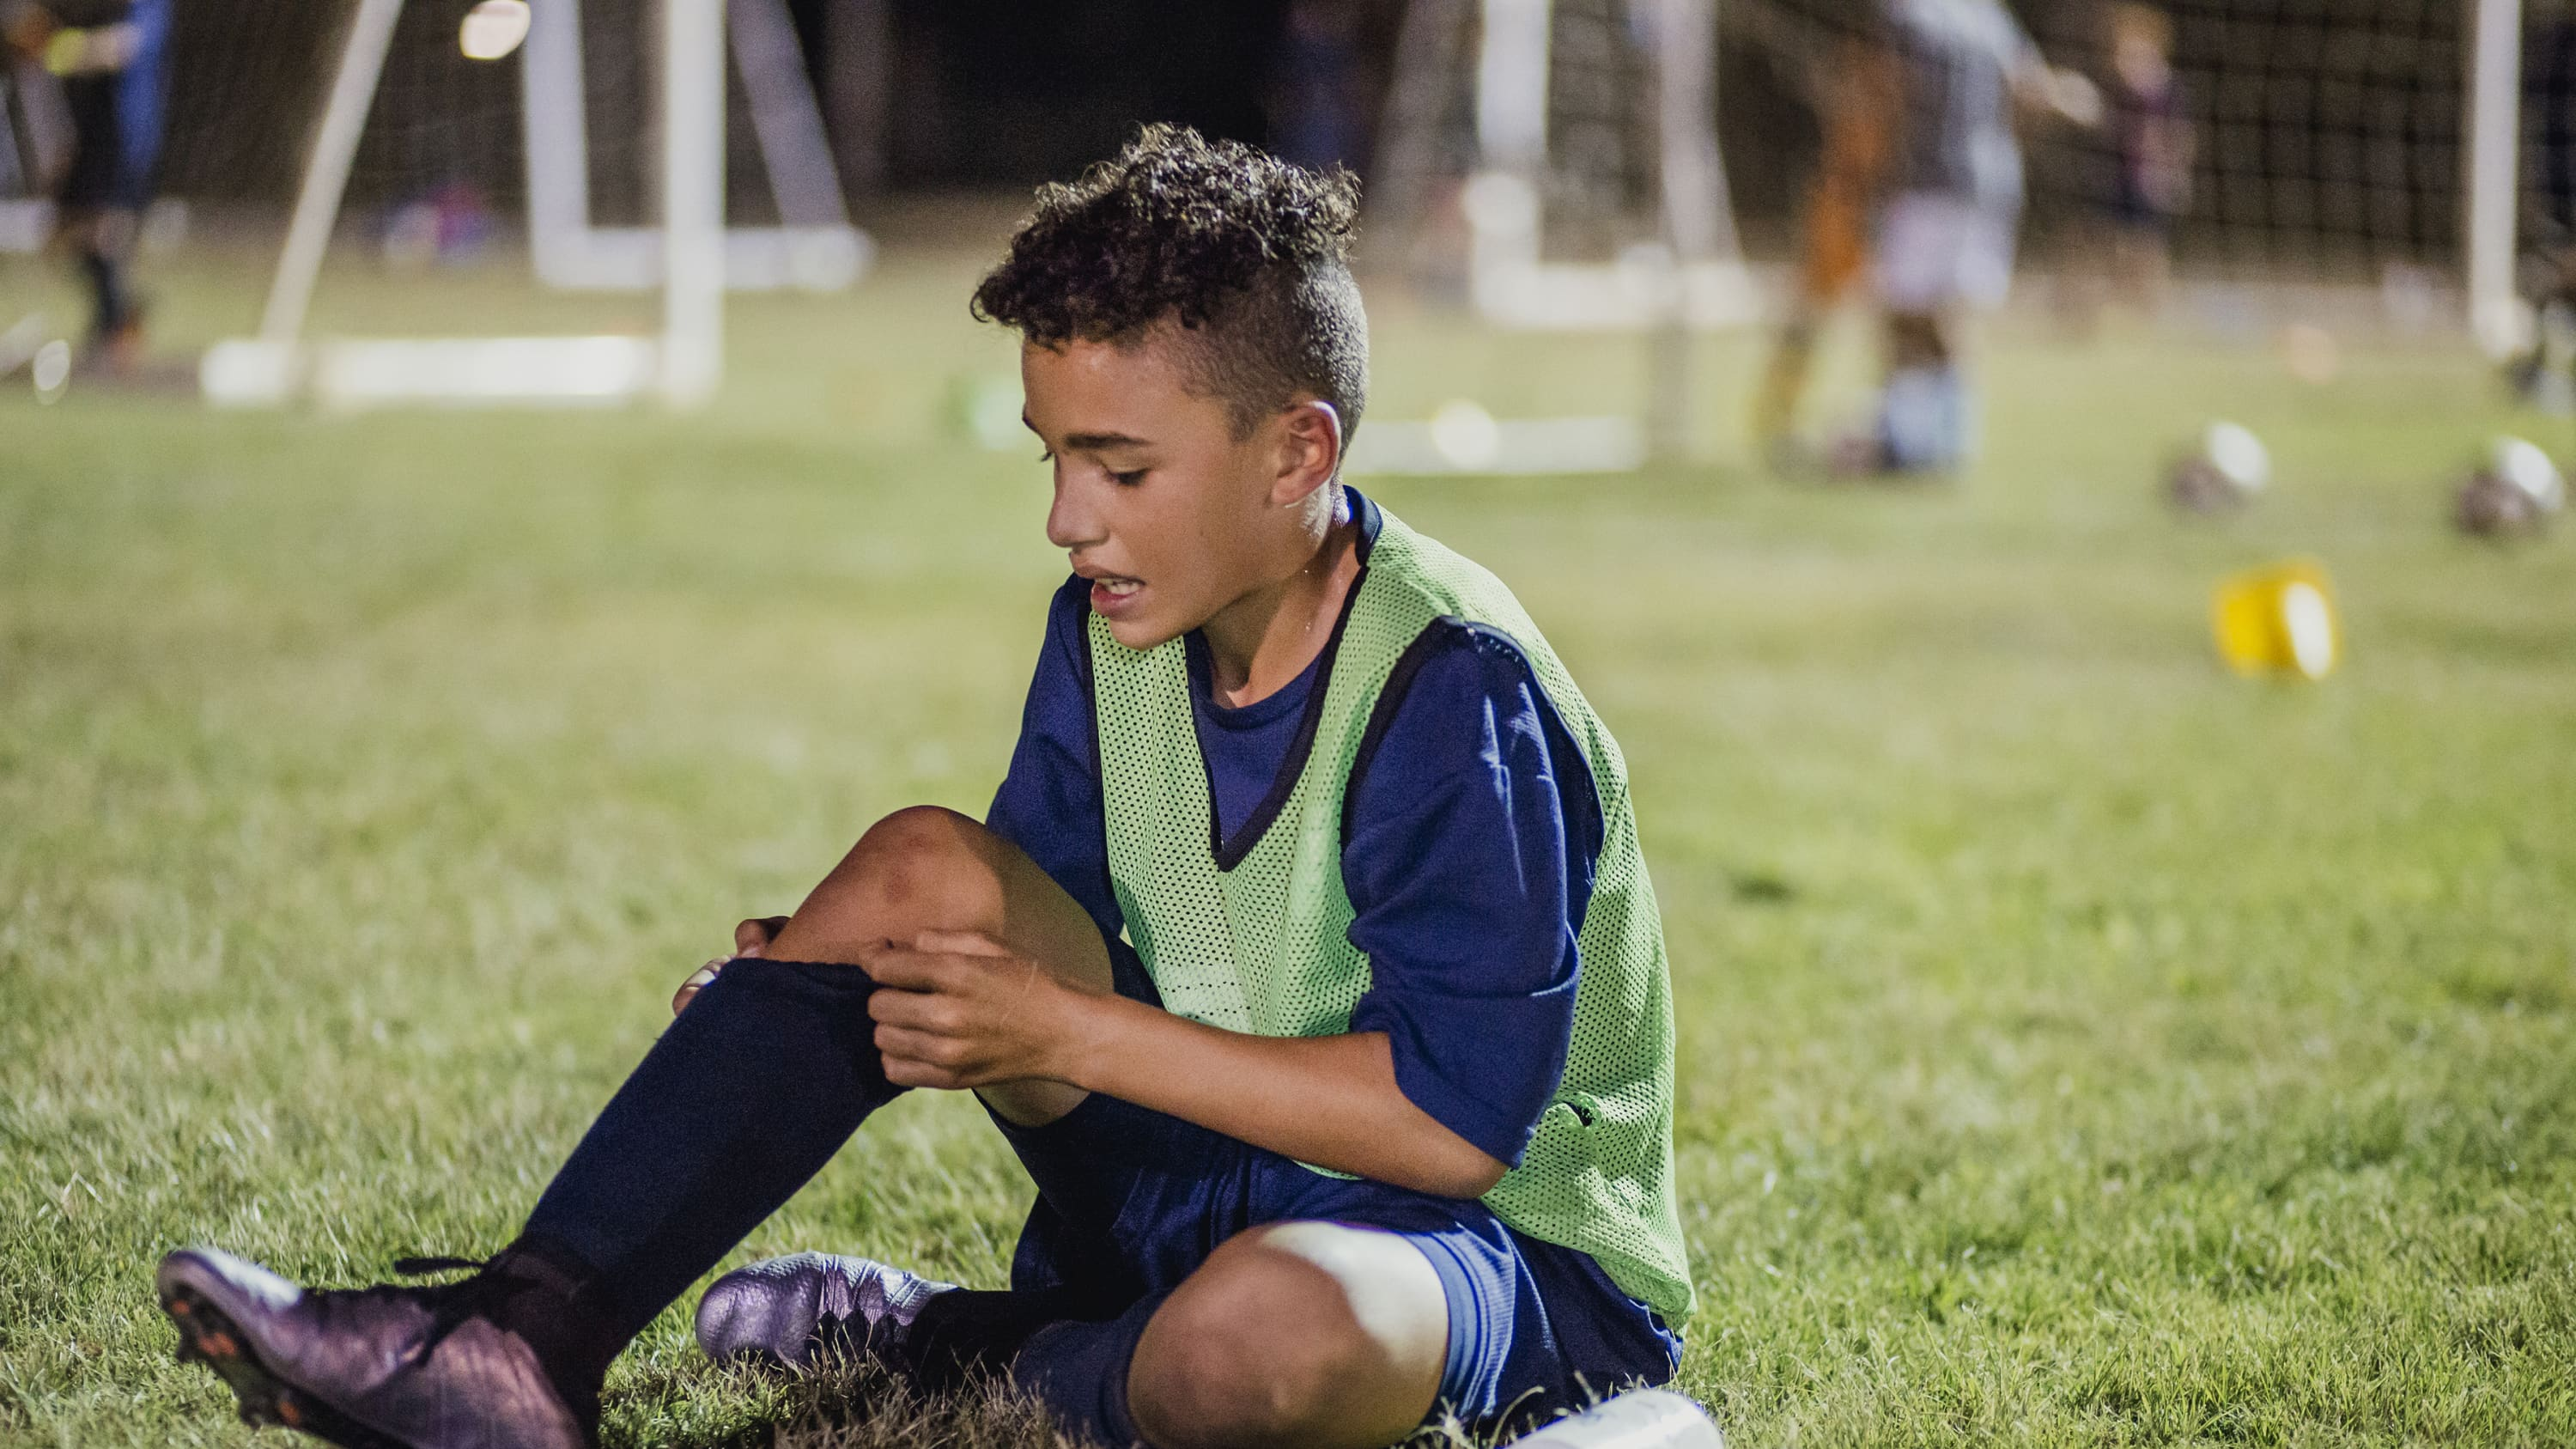 A boy injures himself, with possibly a growth plate injury, playing soccer.